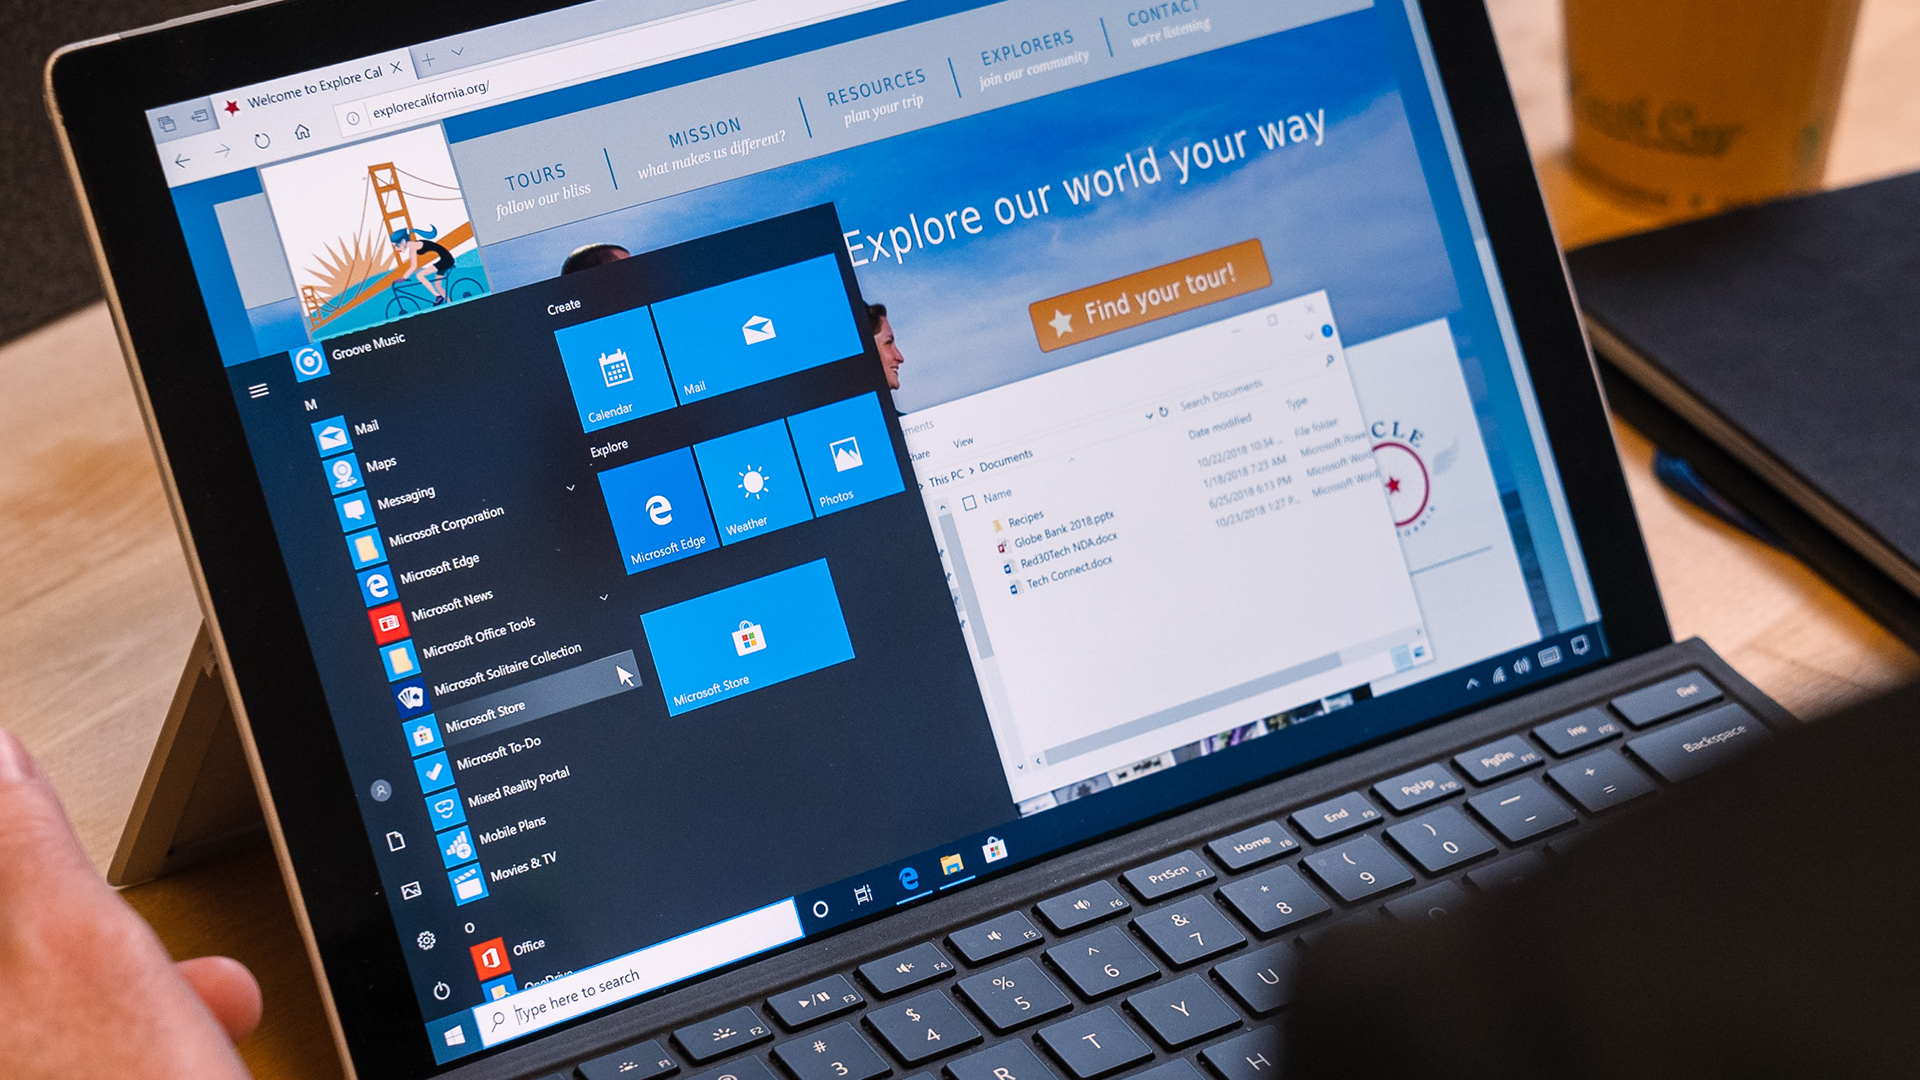 Learn Windows 10 with the May 2019 Update: Windows 10 May 2019 Update Essential Training